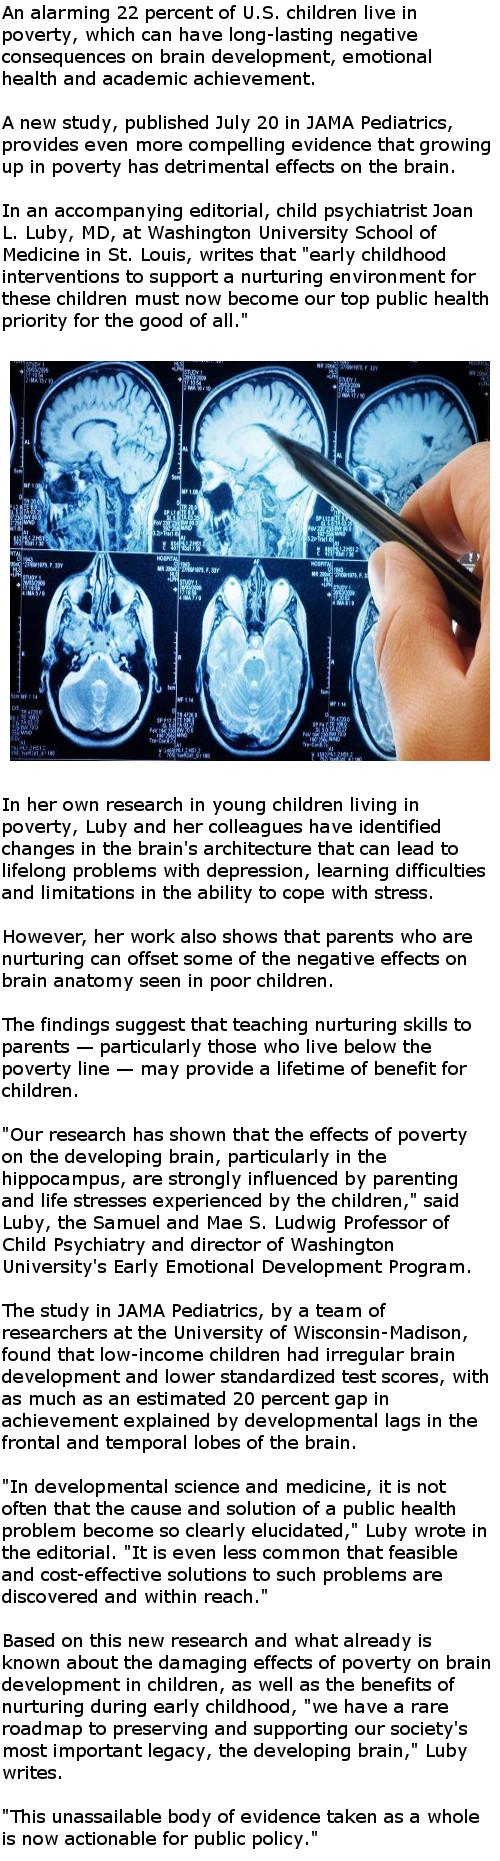 Poverty has detrimental effects on child's brain development